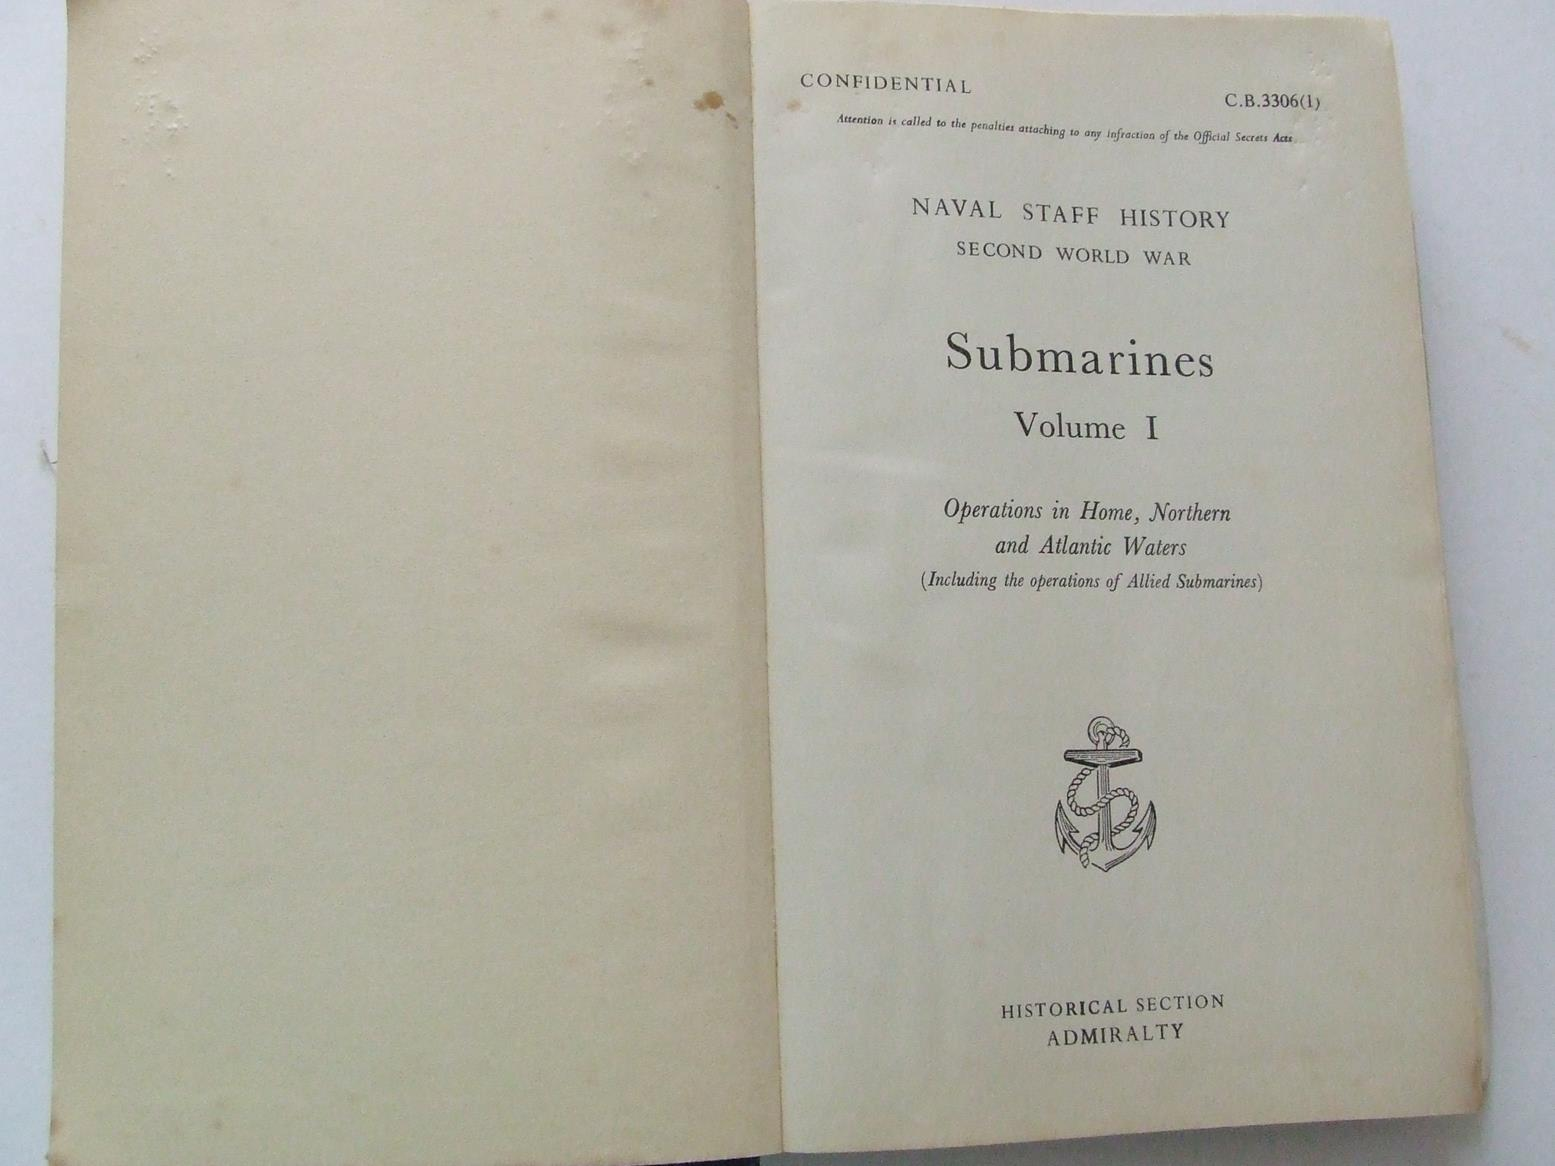 Naval Staff History, Second World War - Submarines